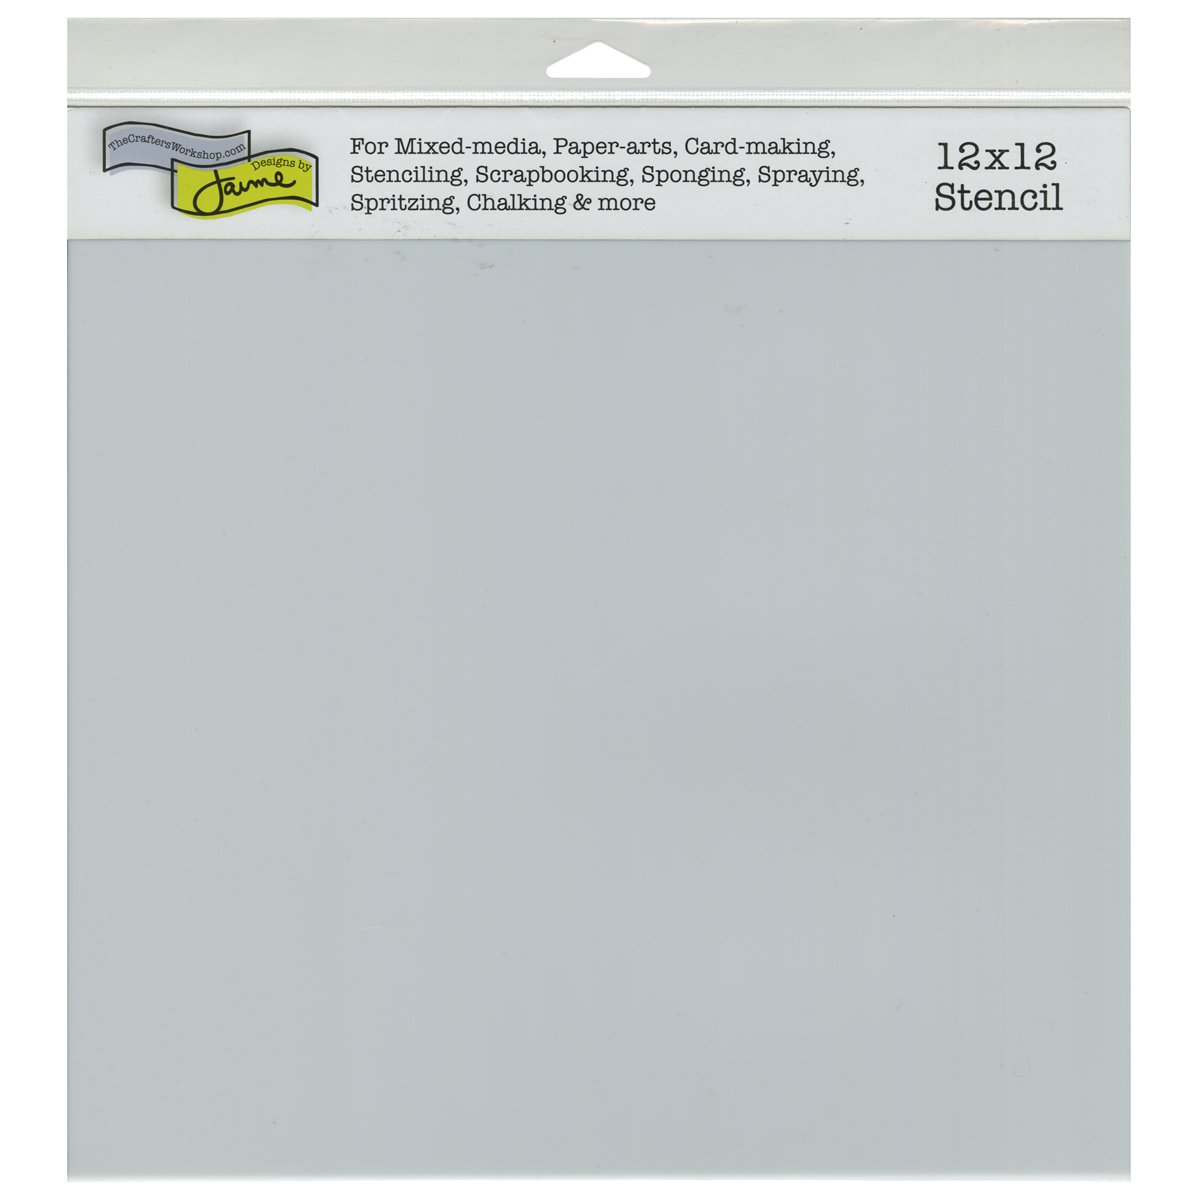 Crafters Workshop Plastic Template 12-inch x 12-inch Stencil Sheets TCW-340